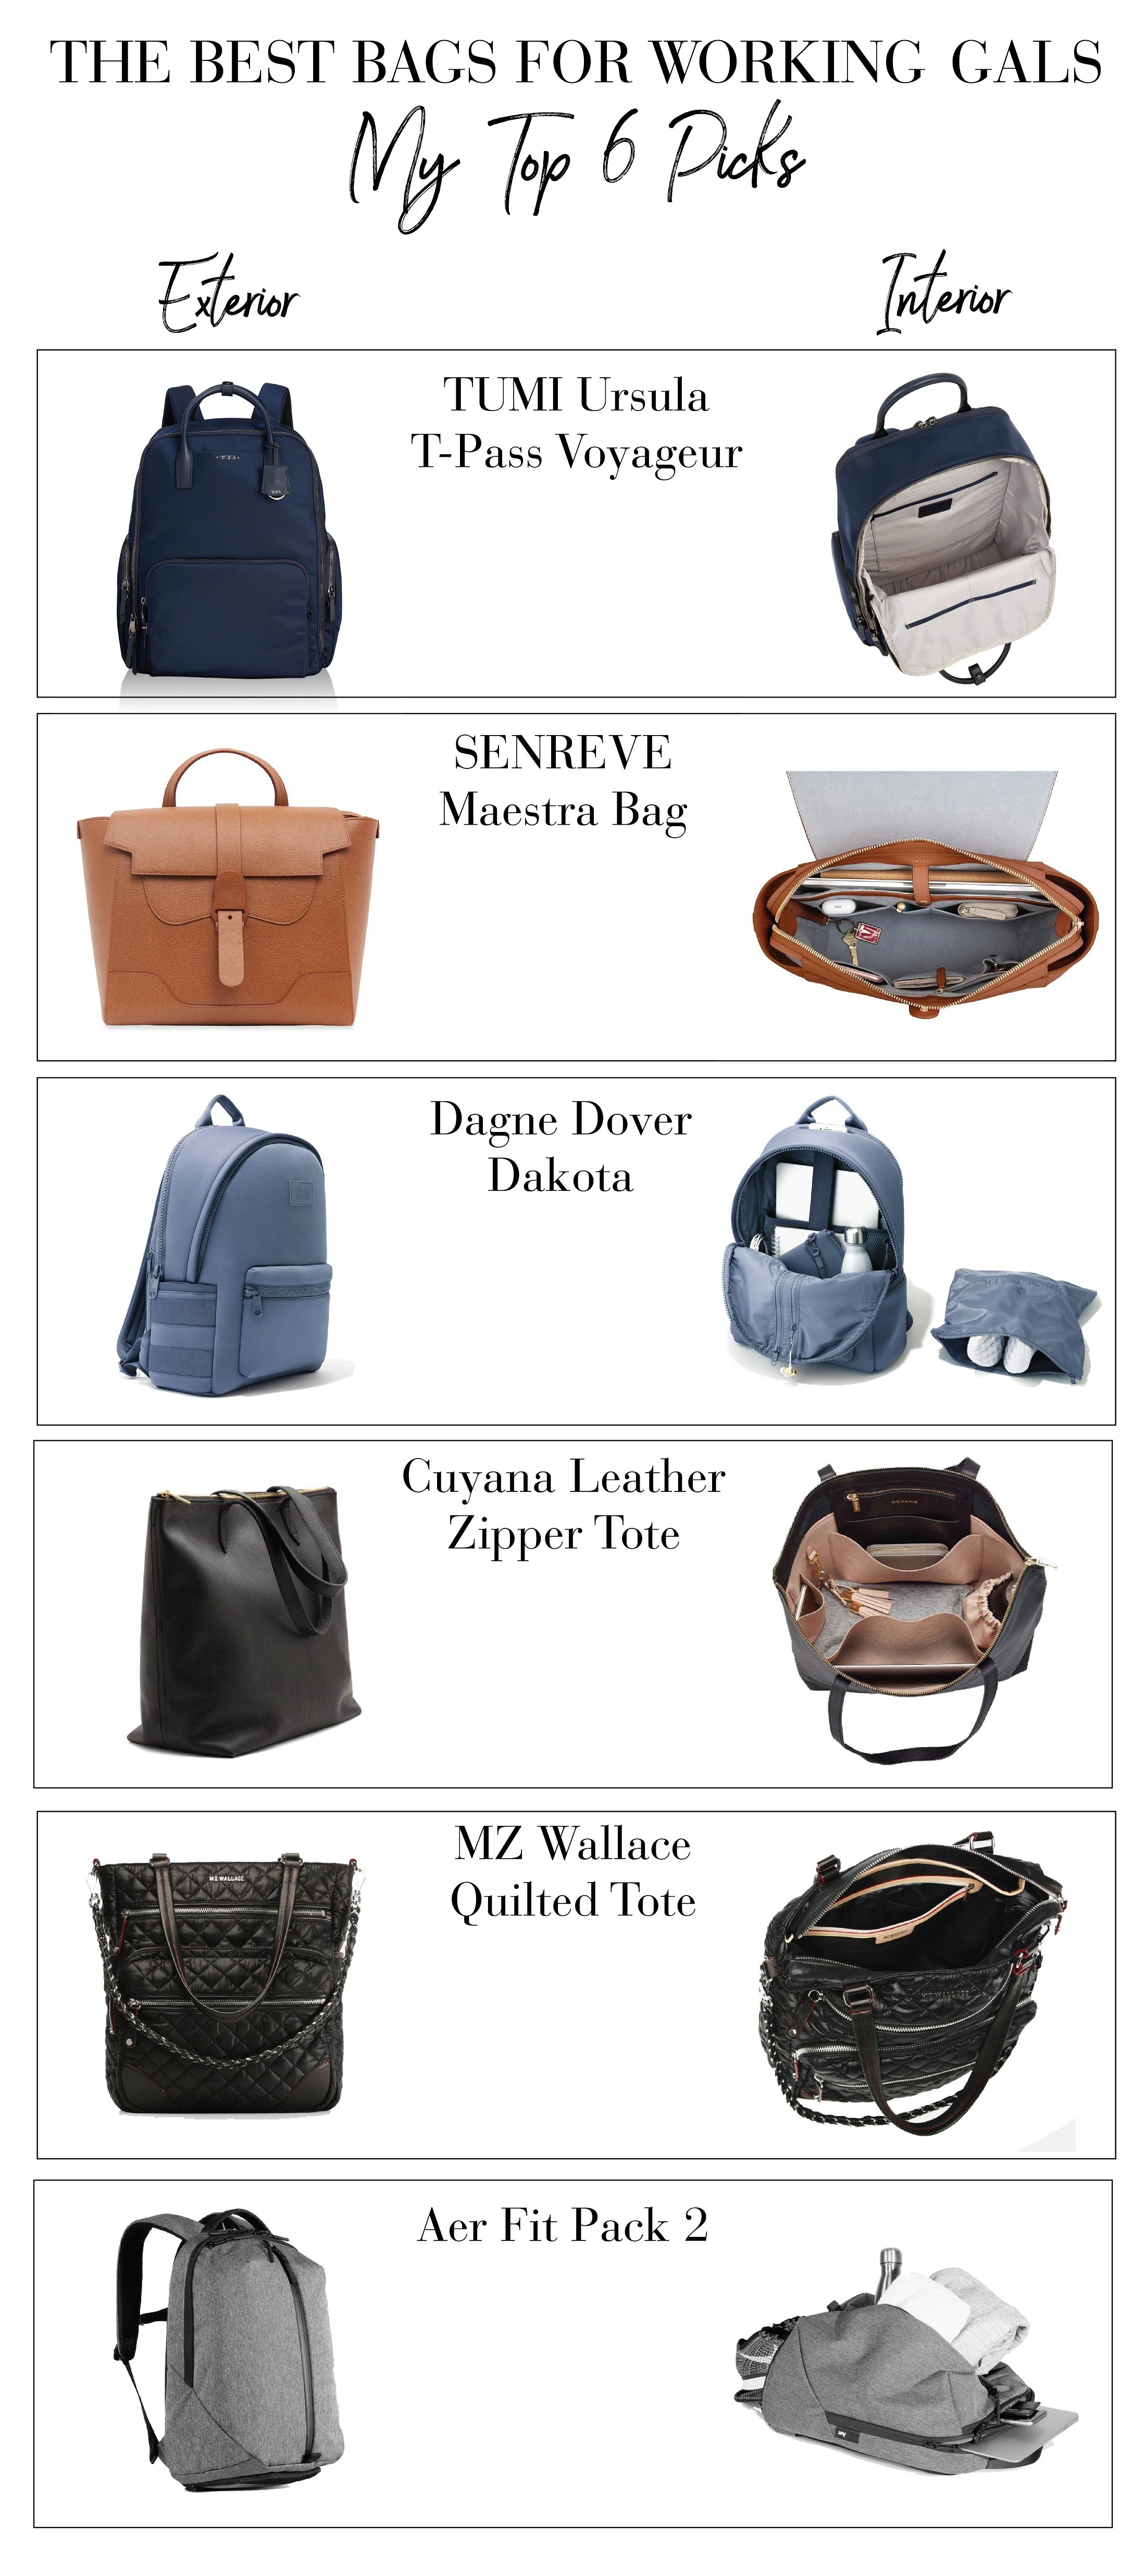 aa668ff3c3004 The Best Bags for Working Women | The Mom Edit